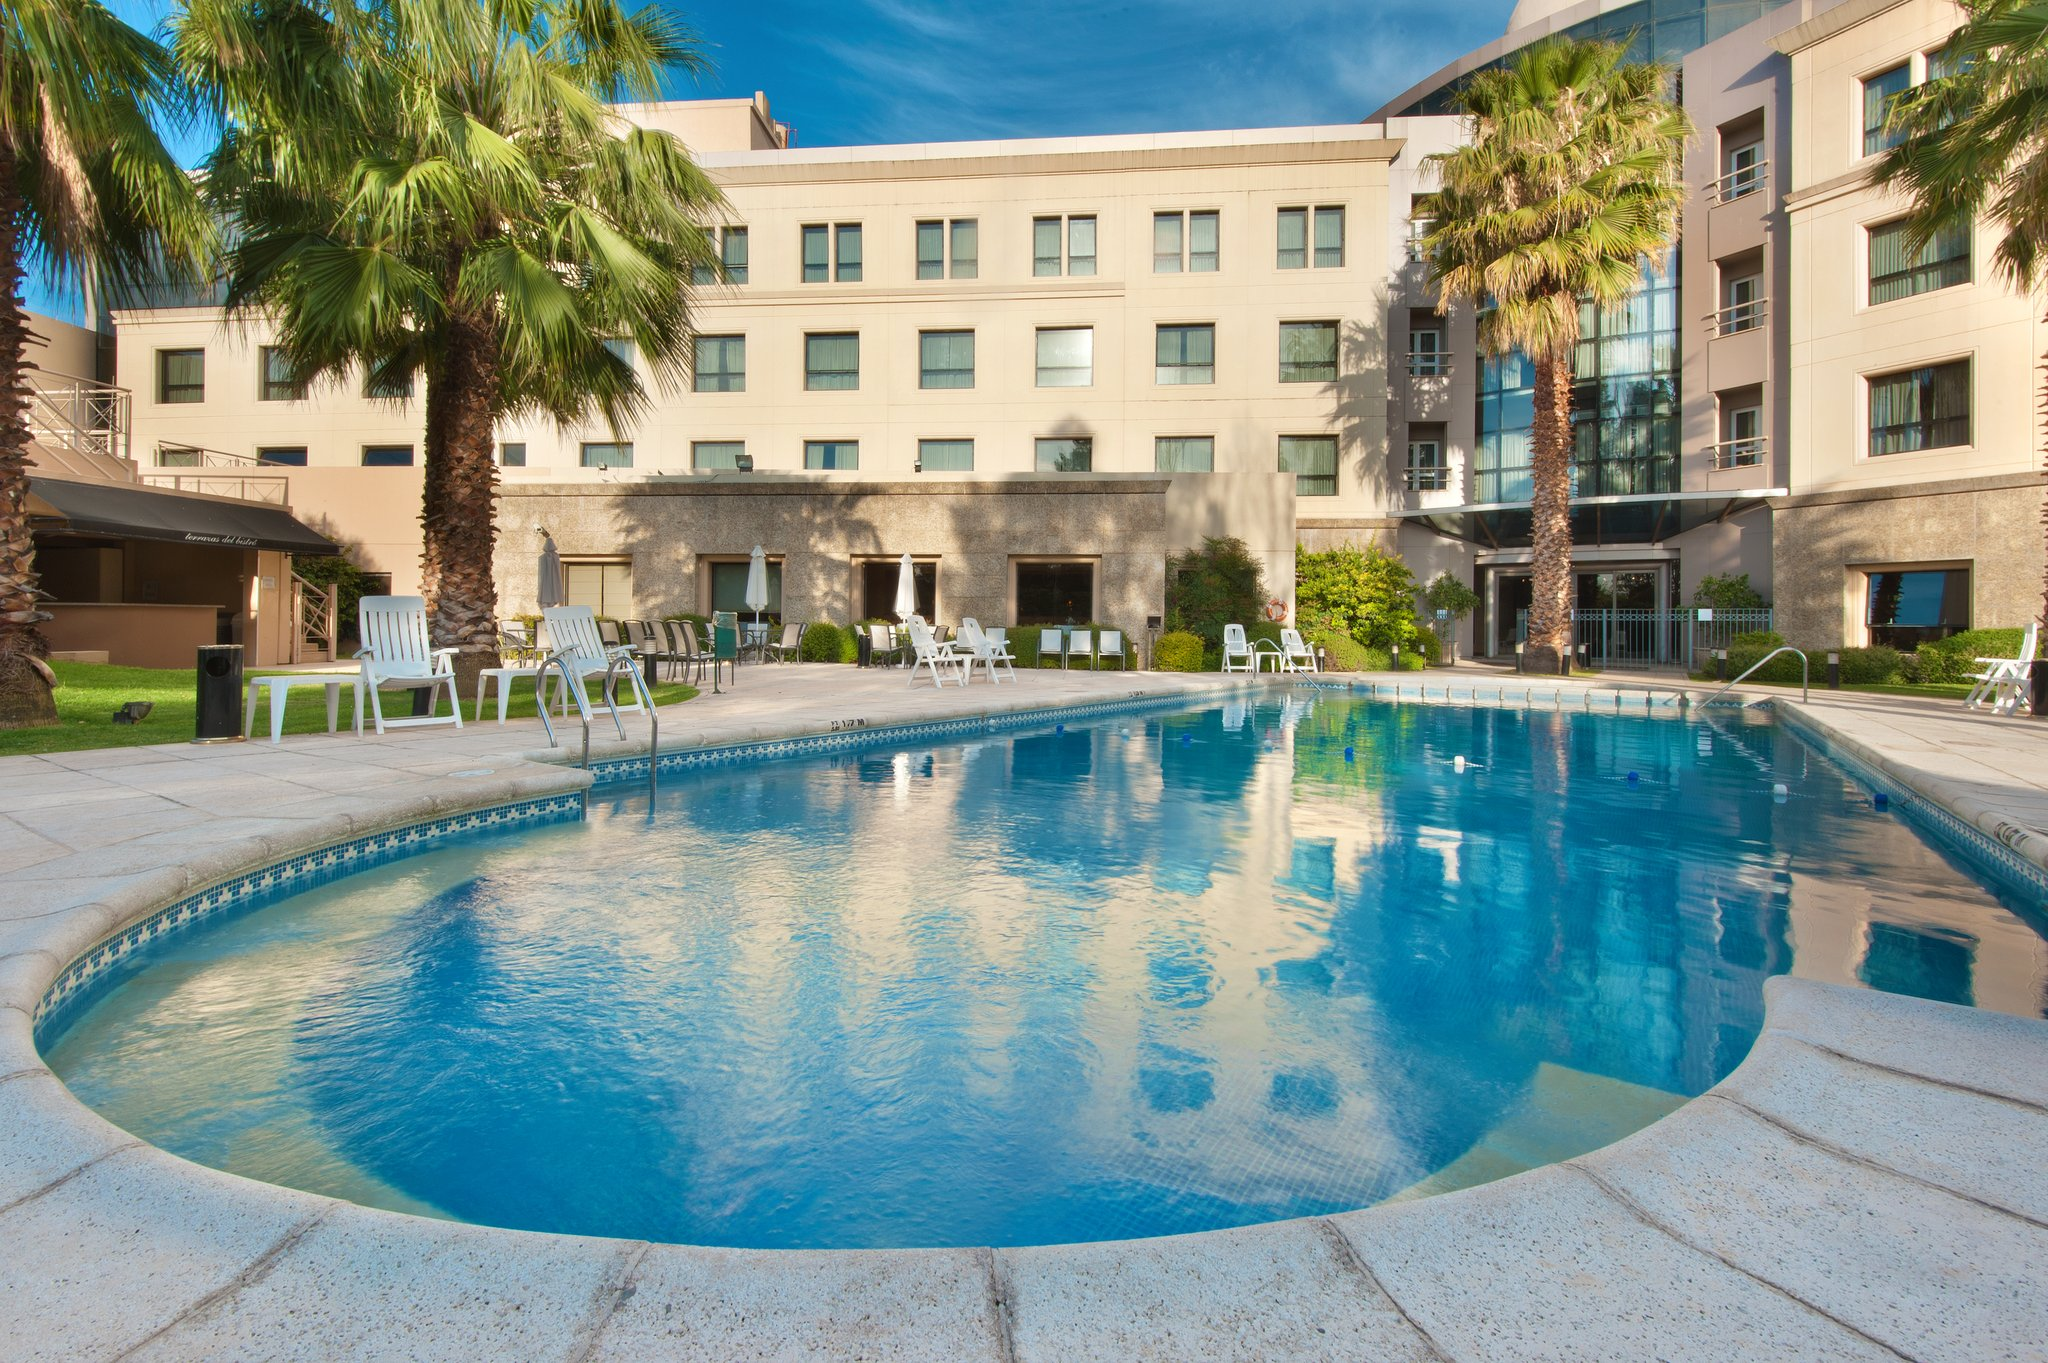 Holiday Inn Cordoba de Ceibotel